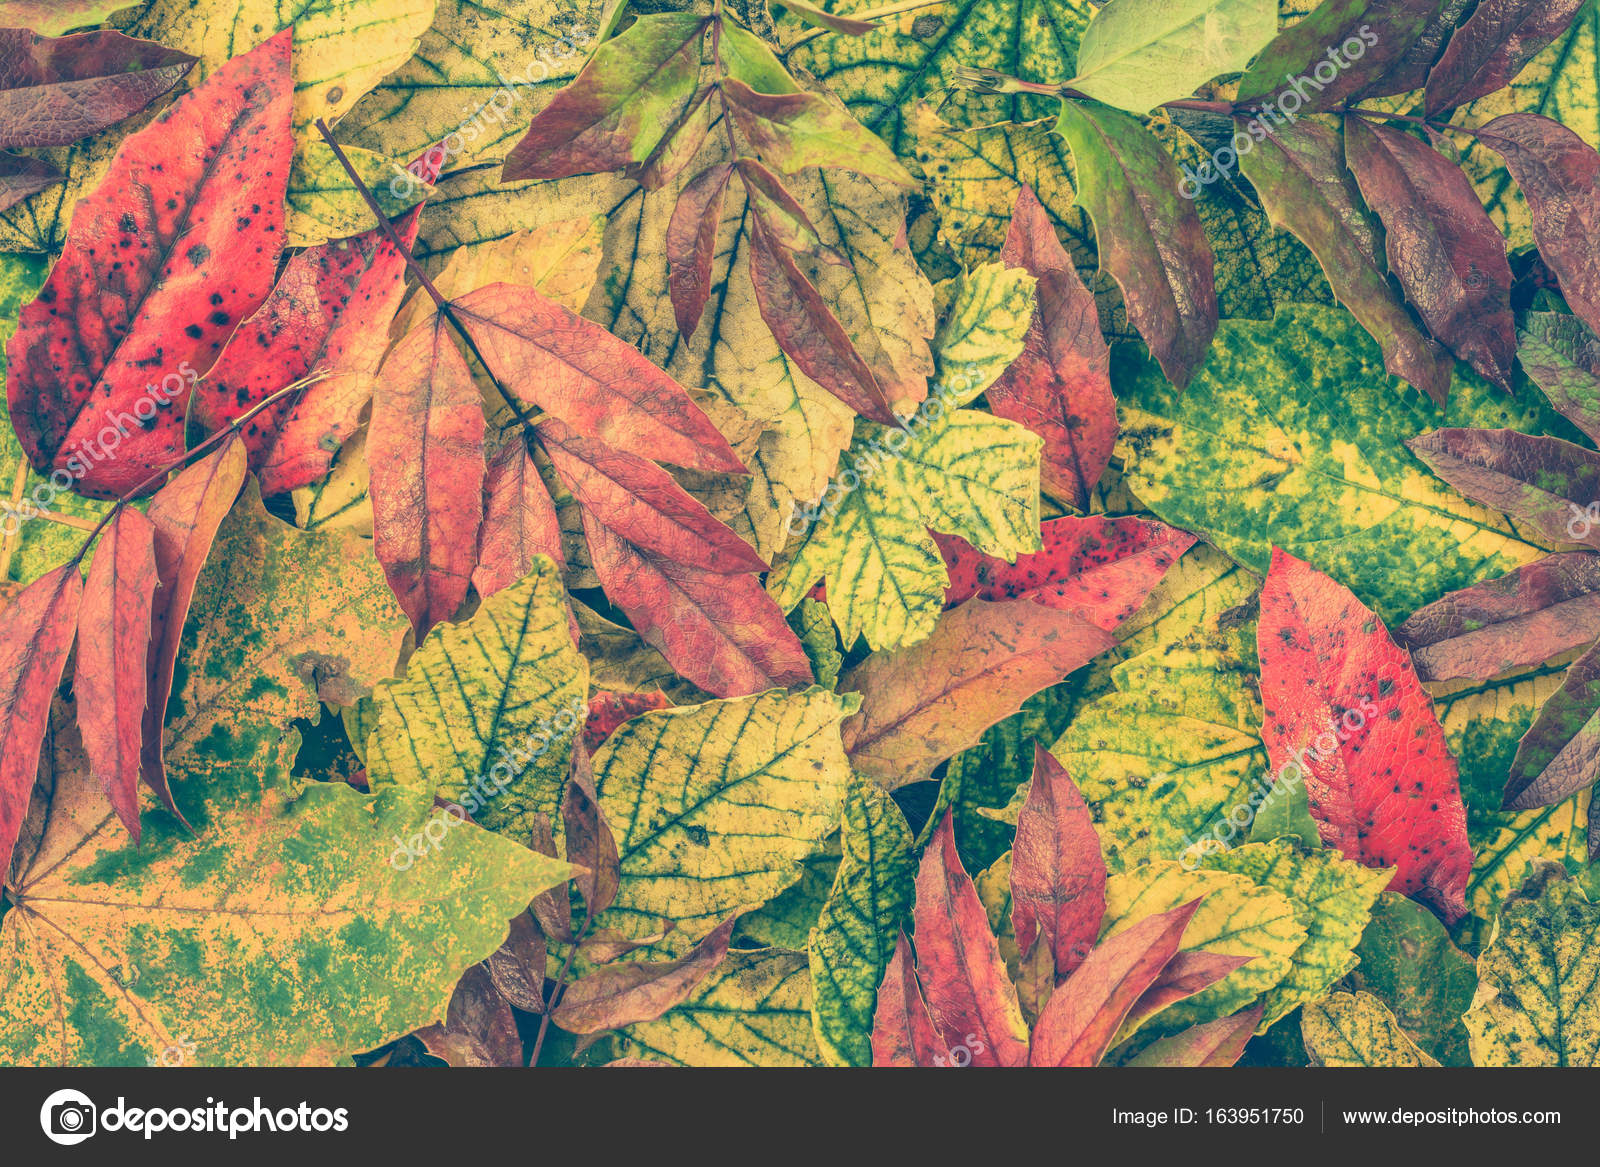 Fall Wallpaper Downloads Autumn Backgrounds With Colorful